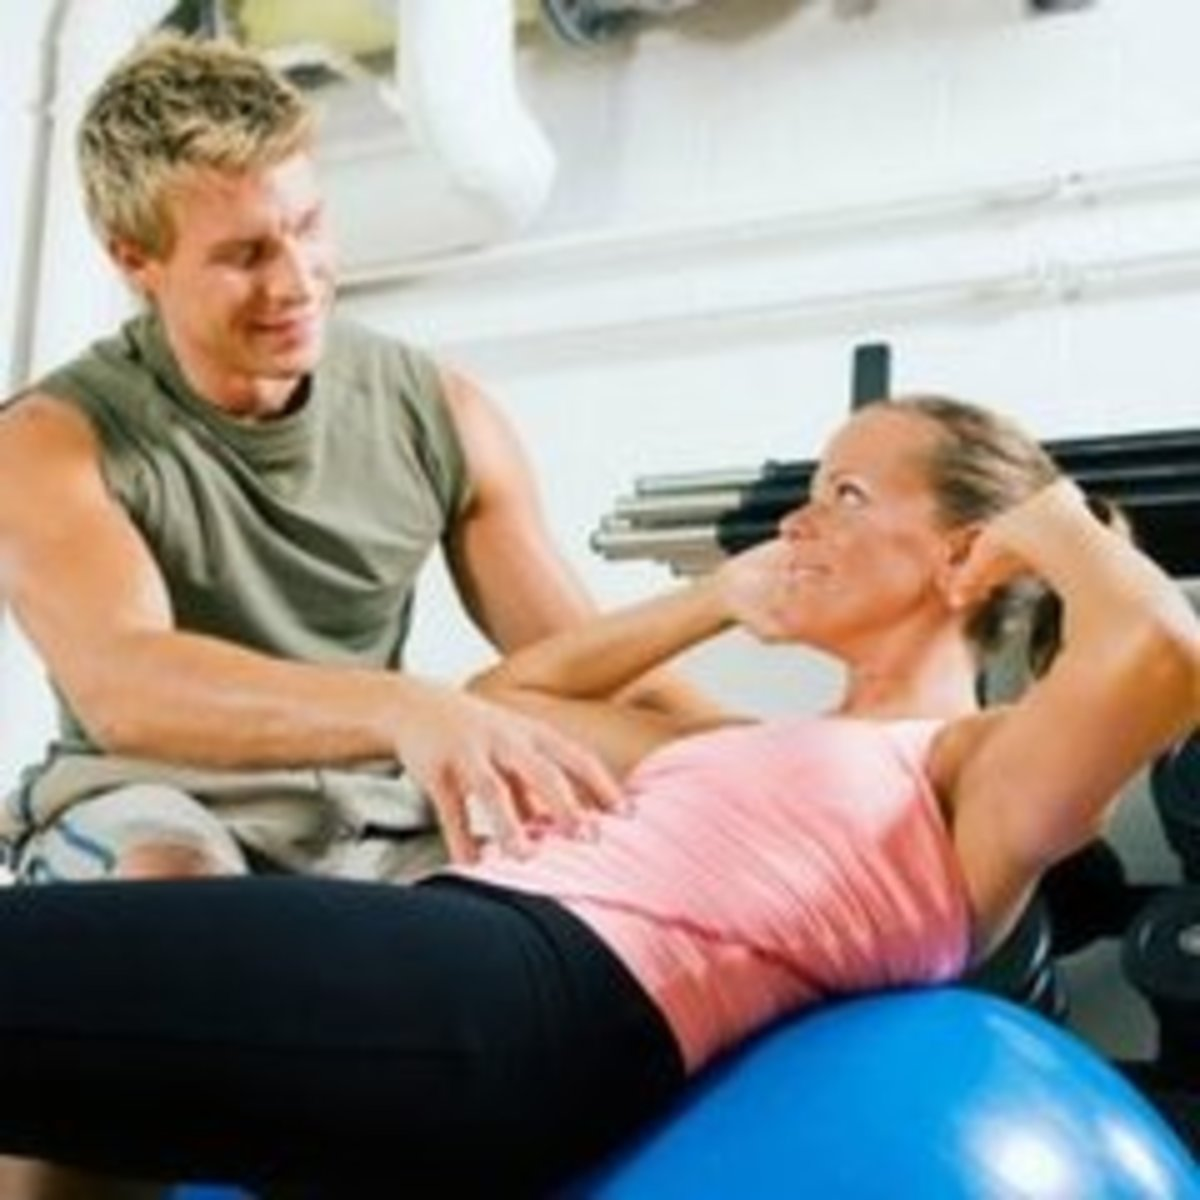 Let a fitness expert assist you.